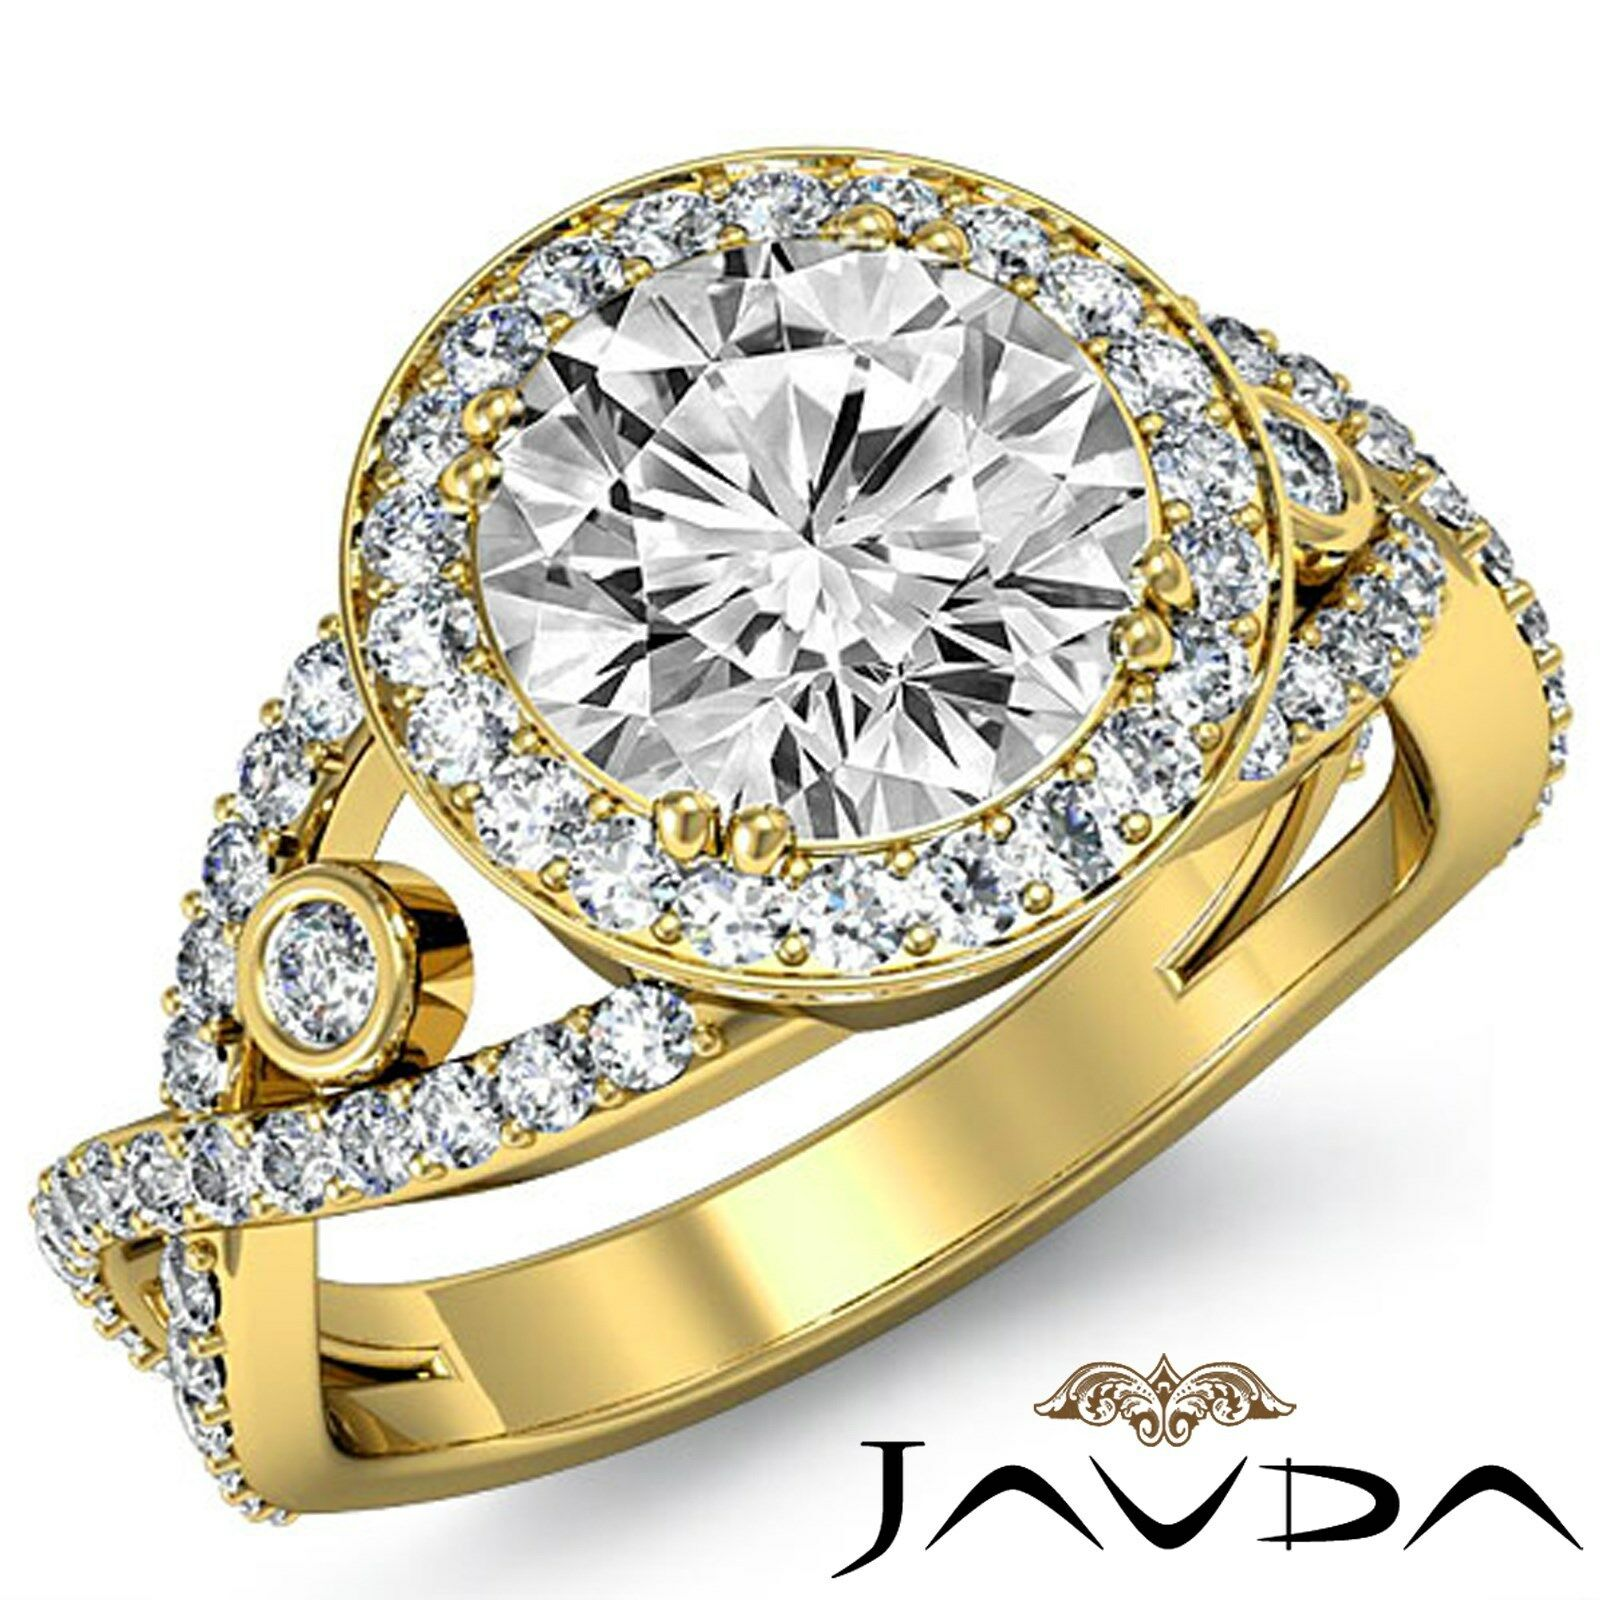 Cross Split Shank Round Diamond Engagement Ring GIA F VS2 18k Yellow Gold 2.9ct